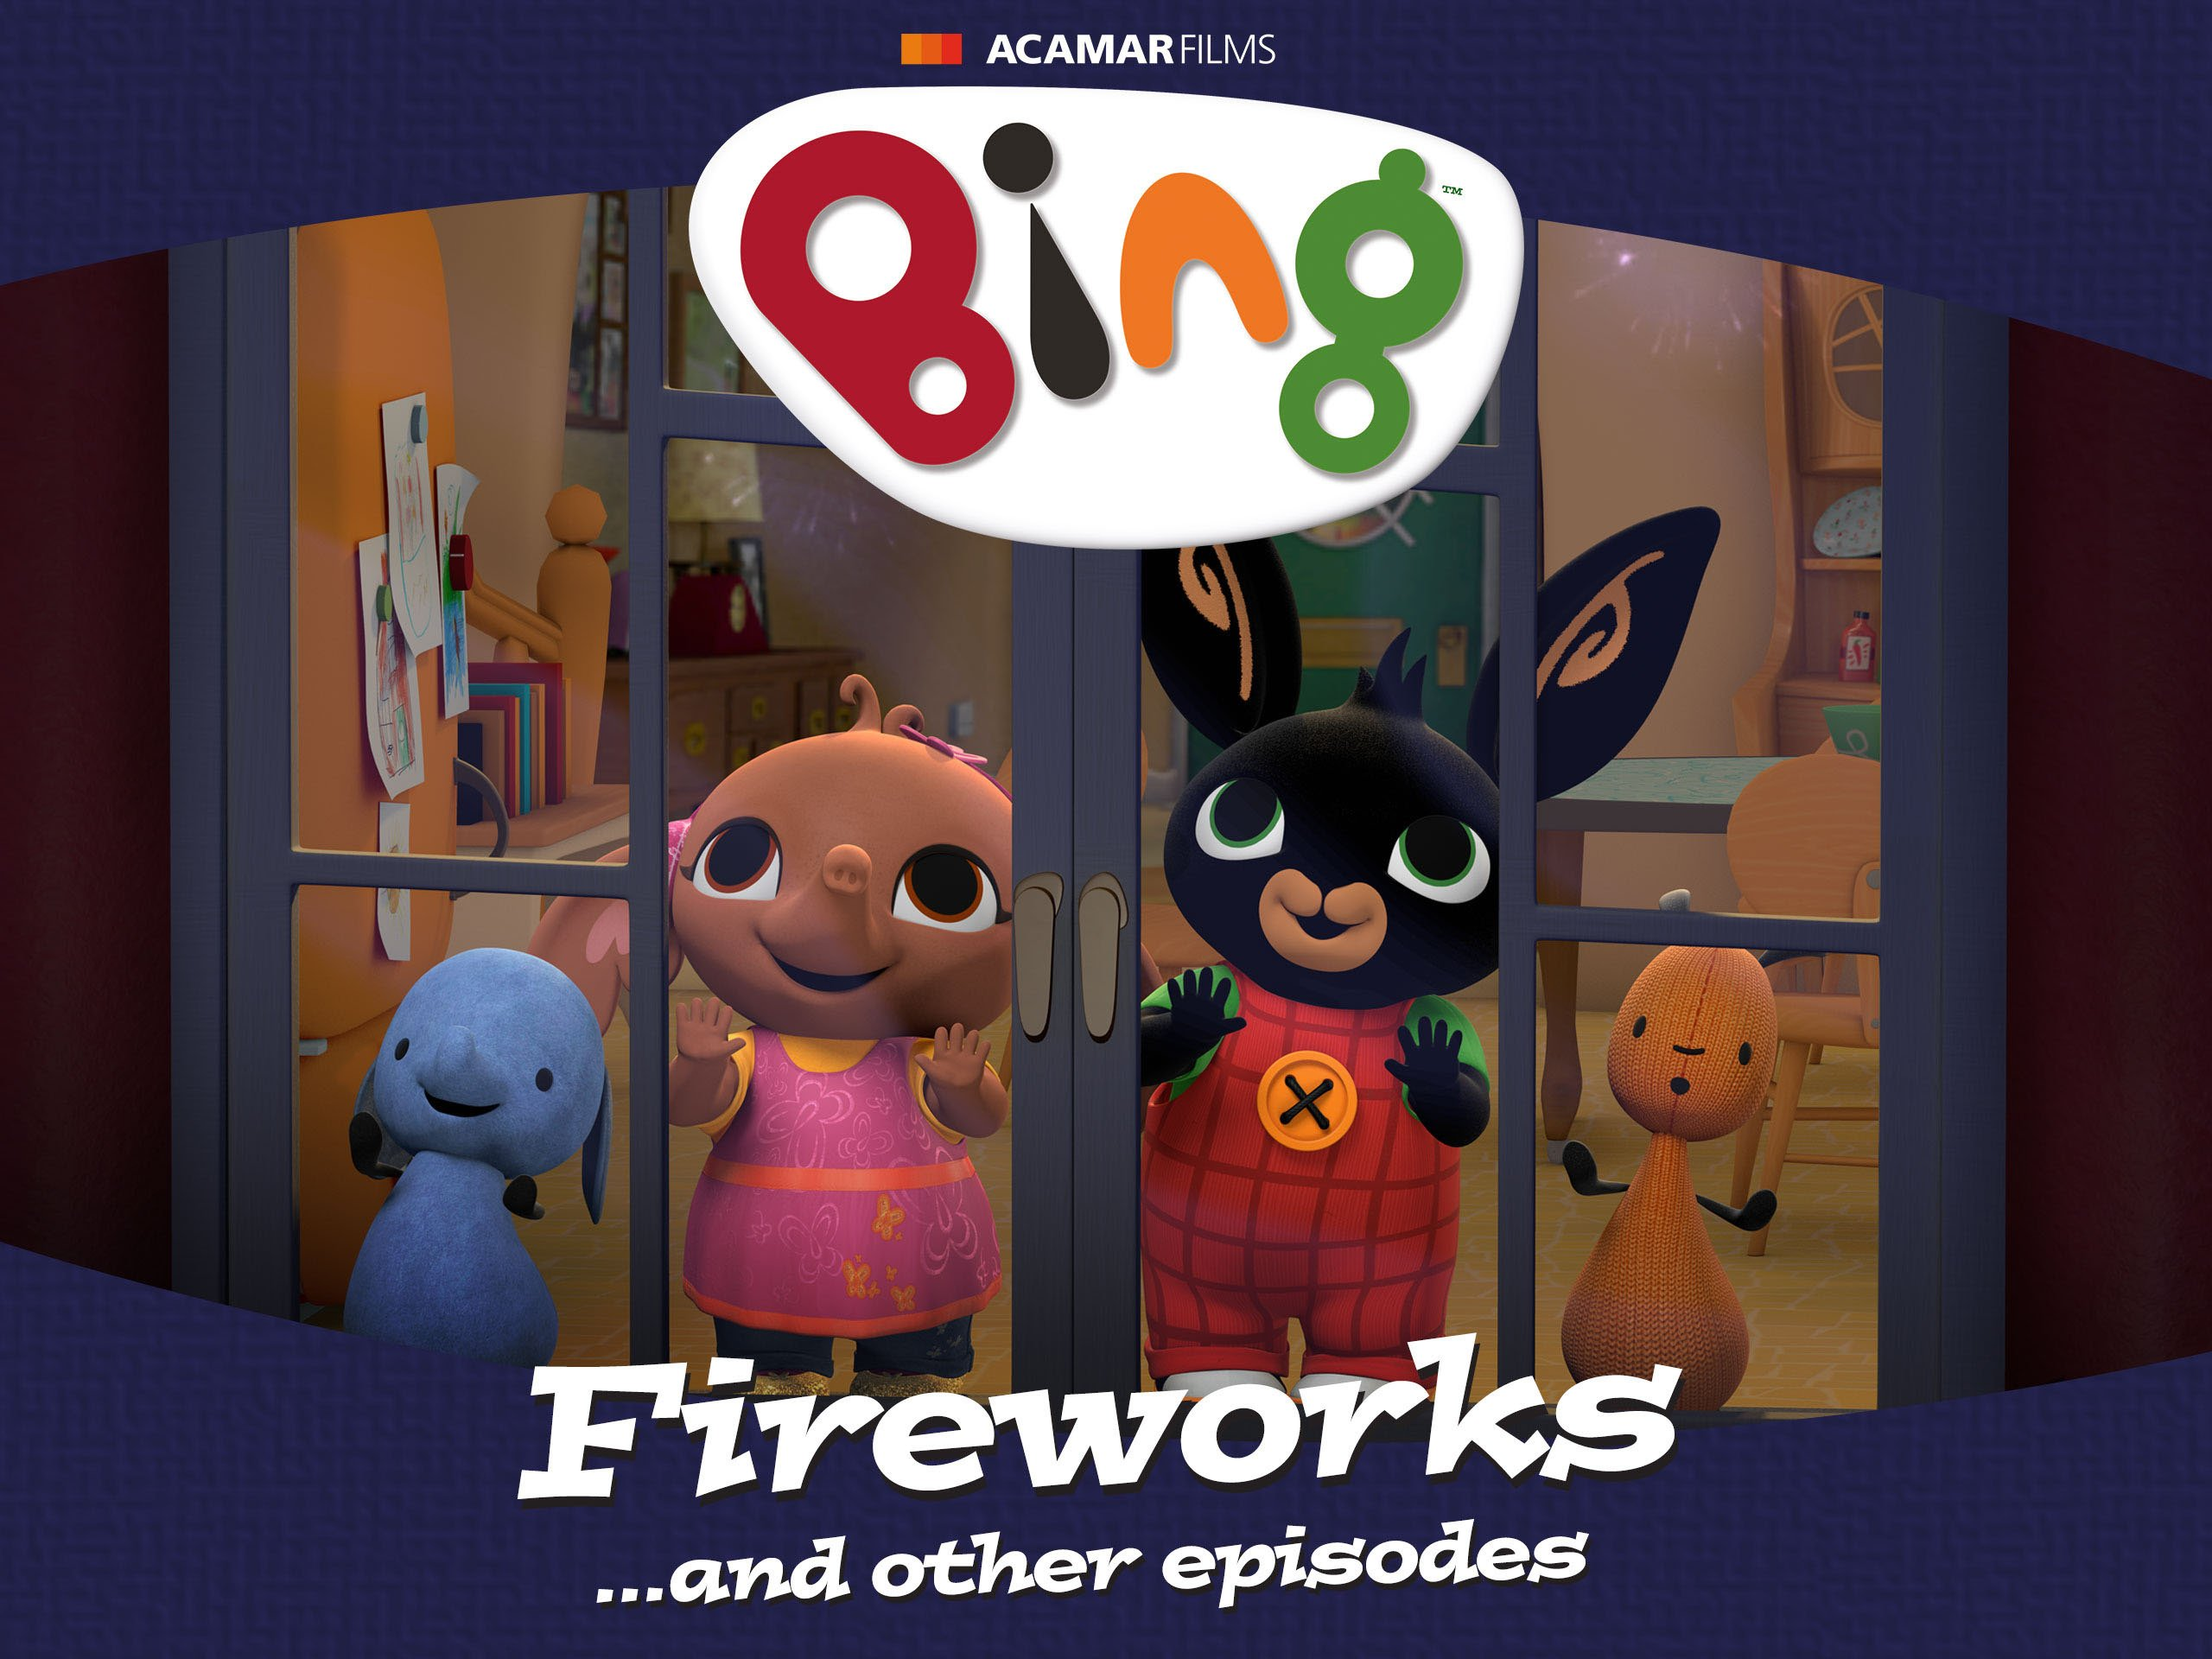 Bing Fireworks & Other Episodes